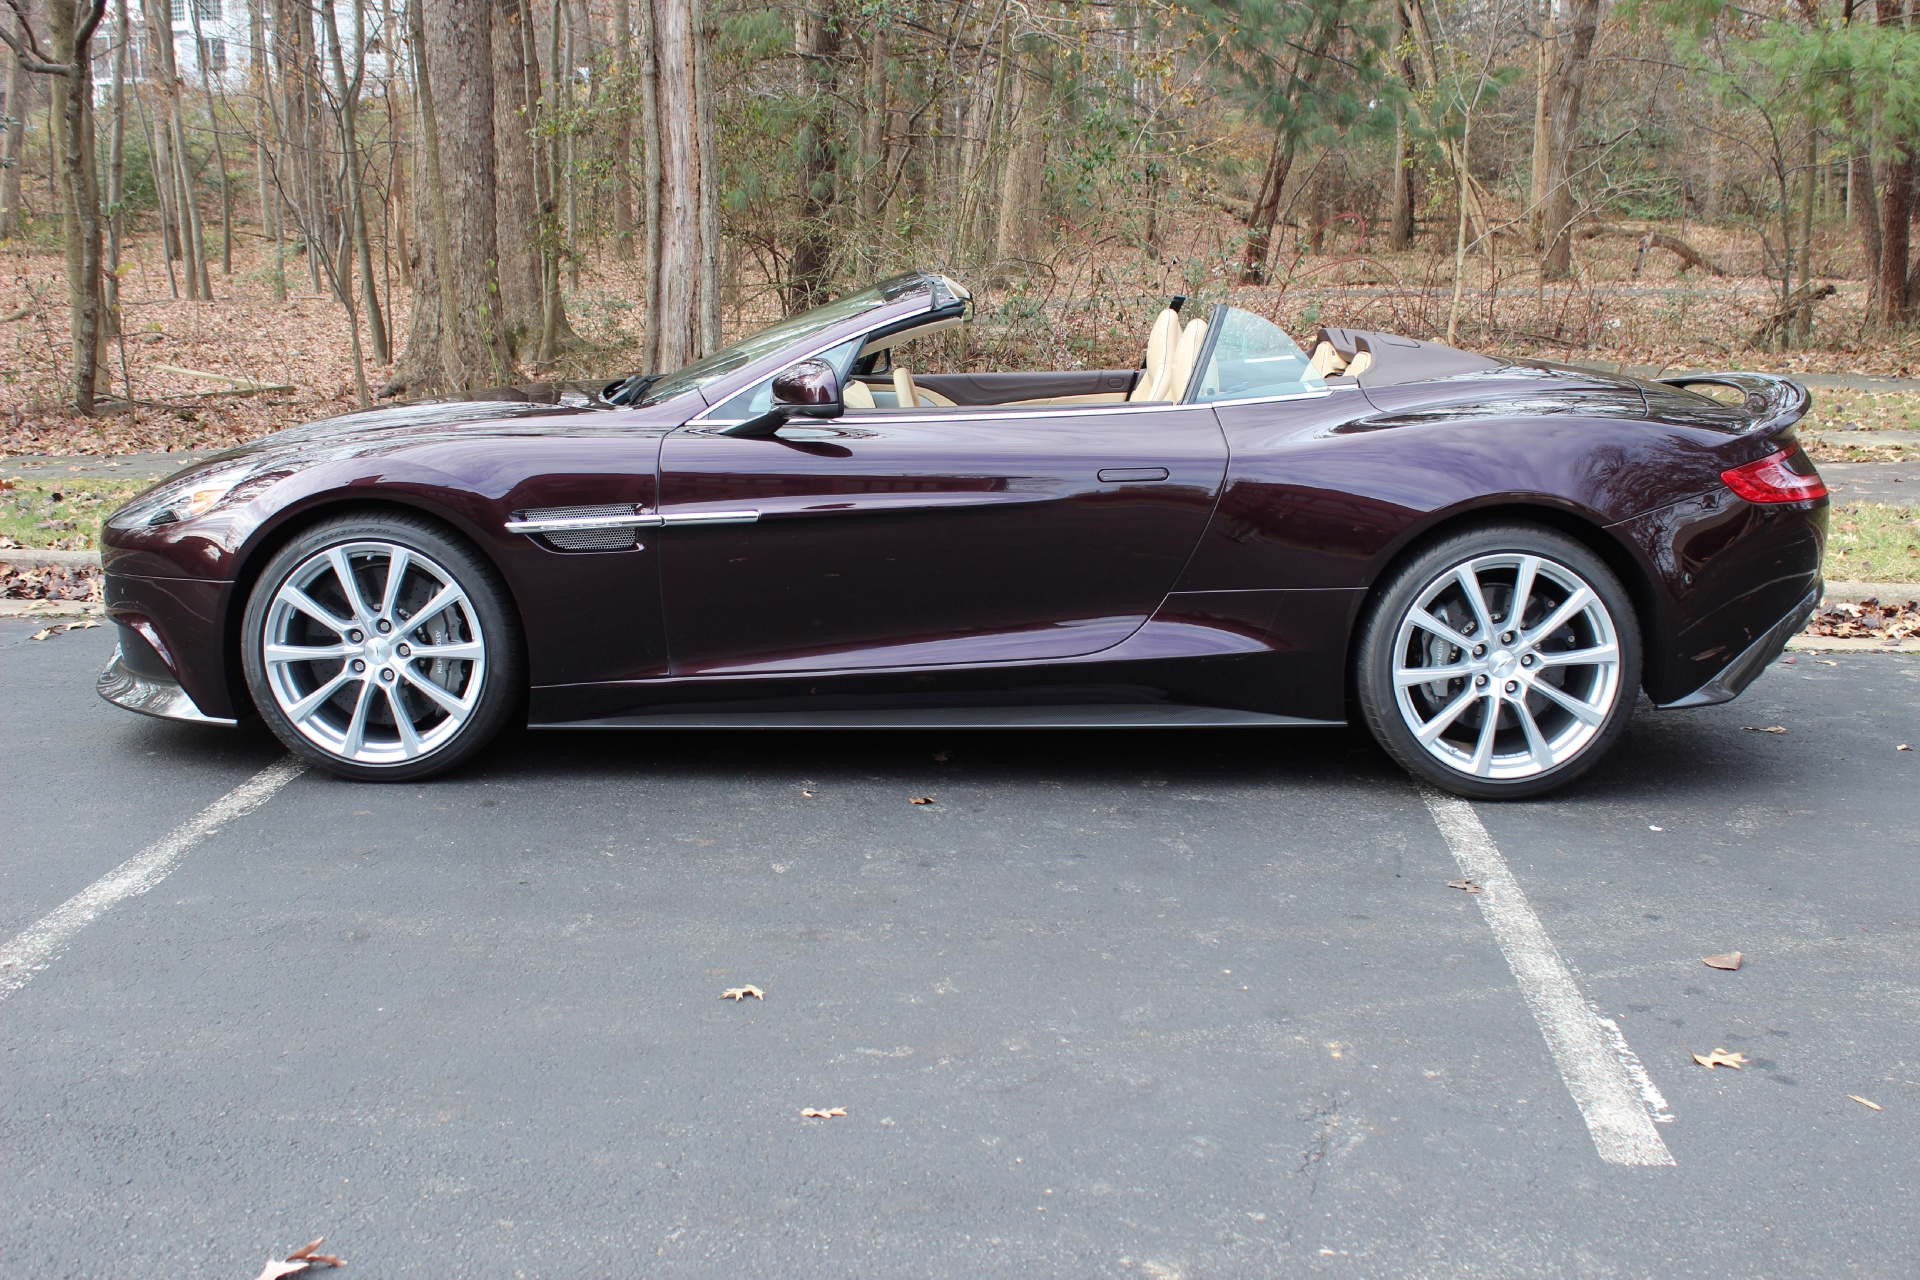 2014 aston martin vanquish volante stock # 4k00981 for sale near